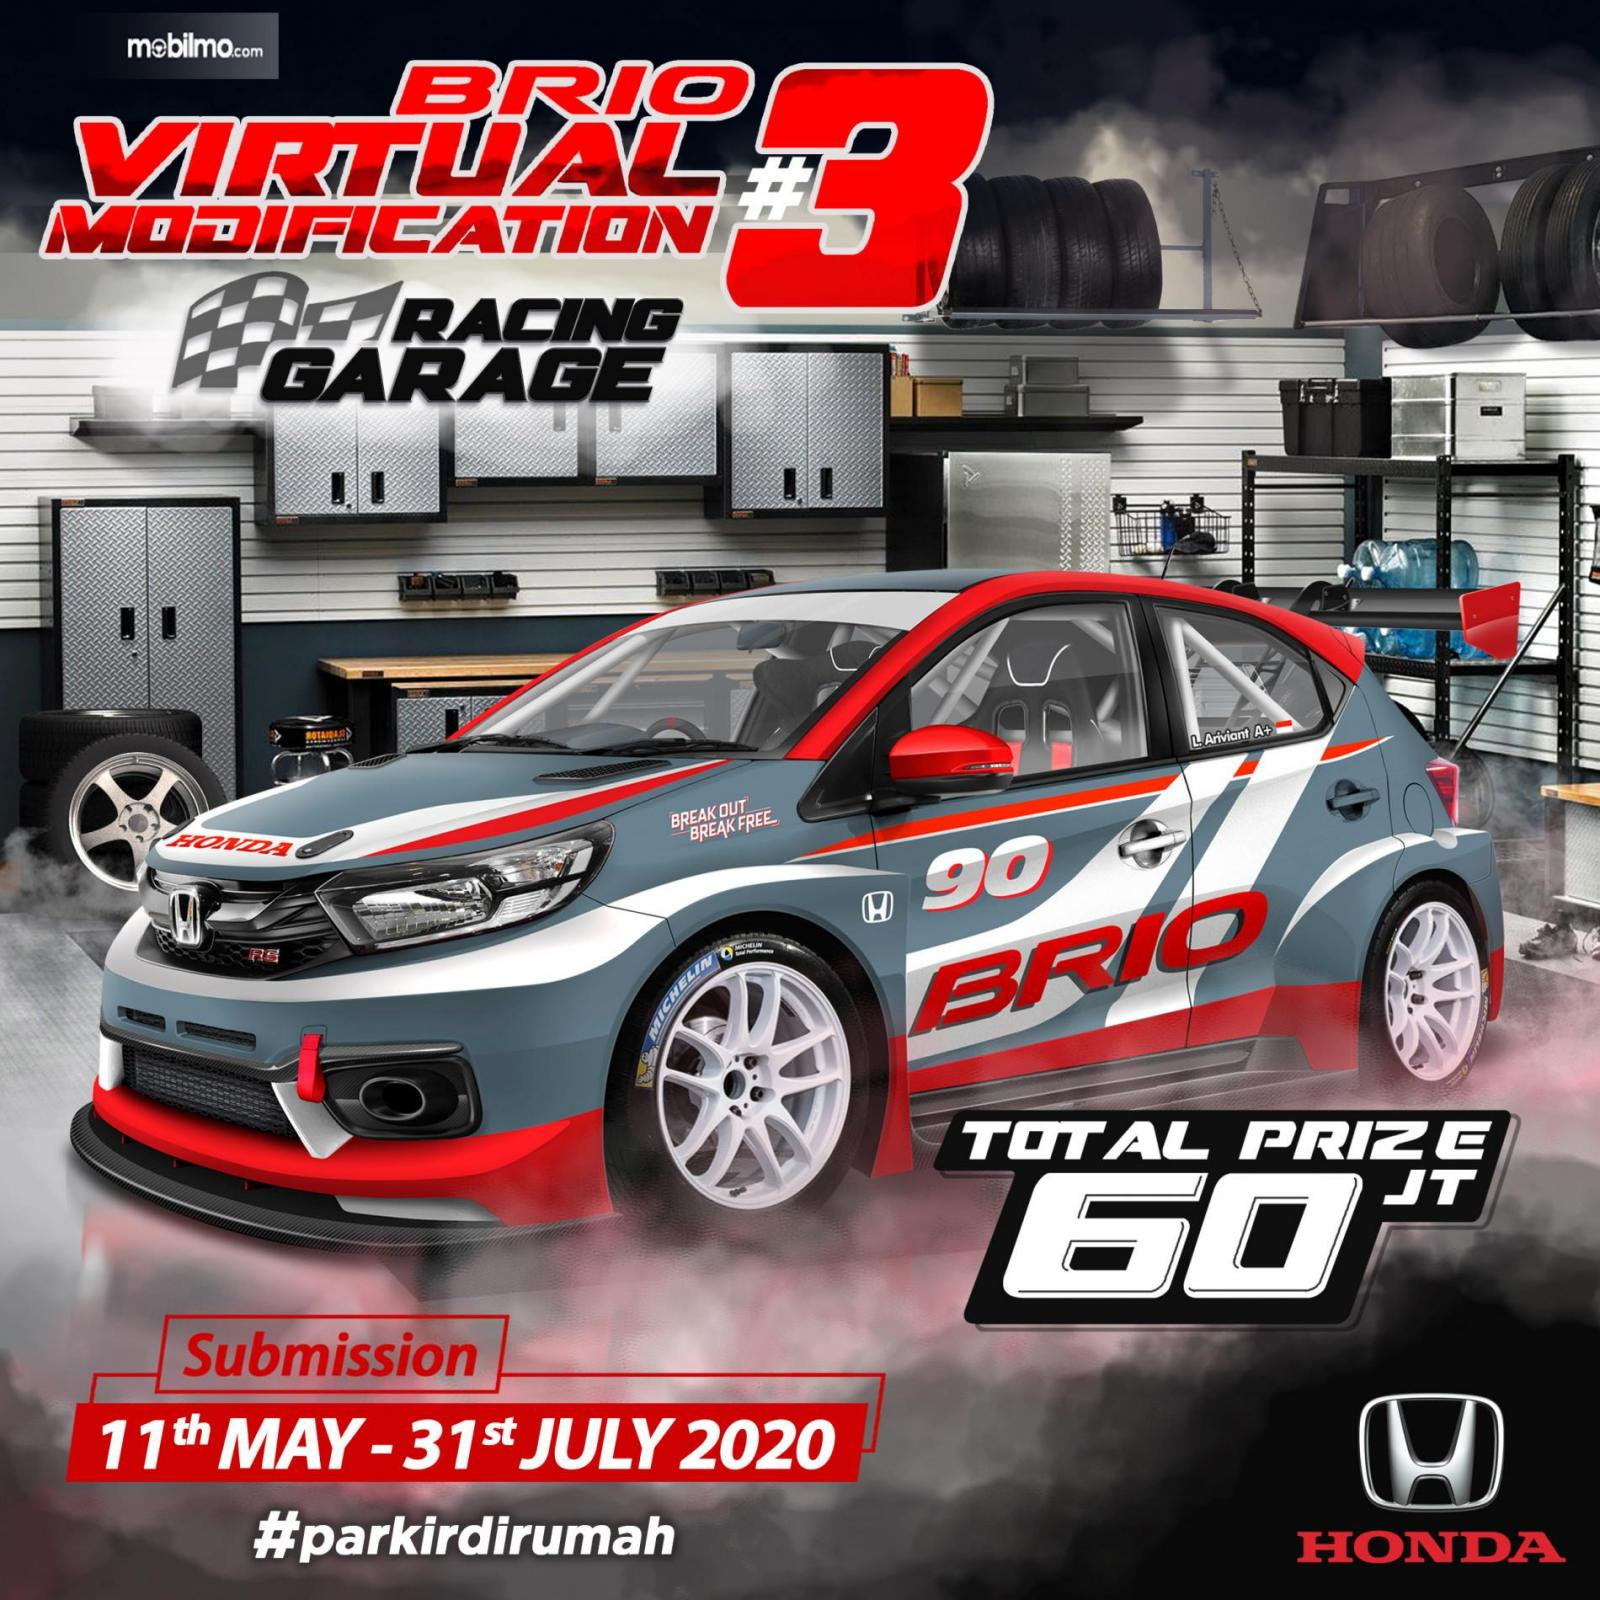 Gambar banner Honda Brio Virtual Modification